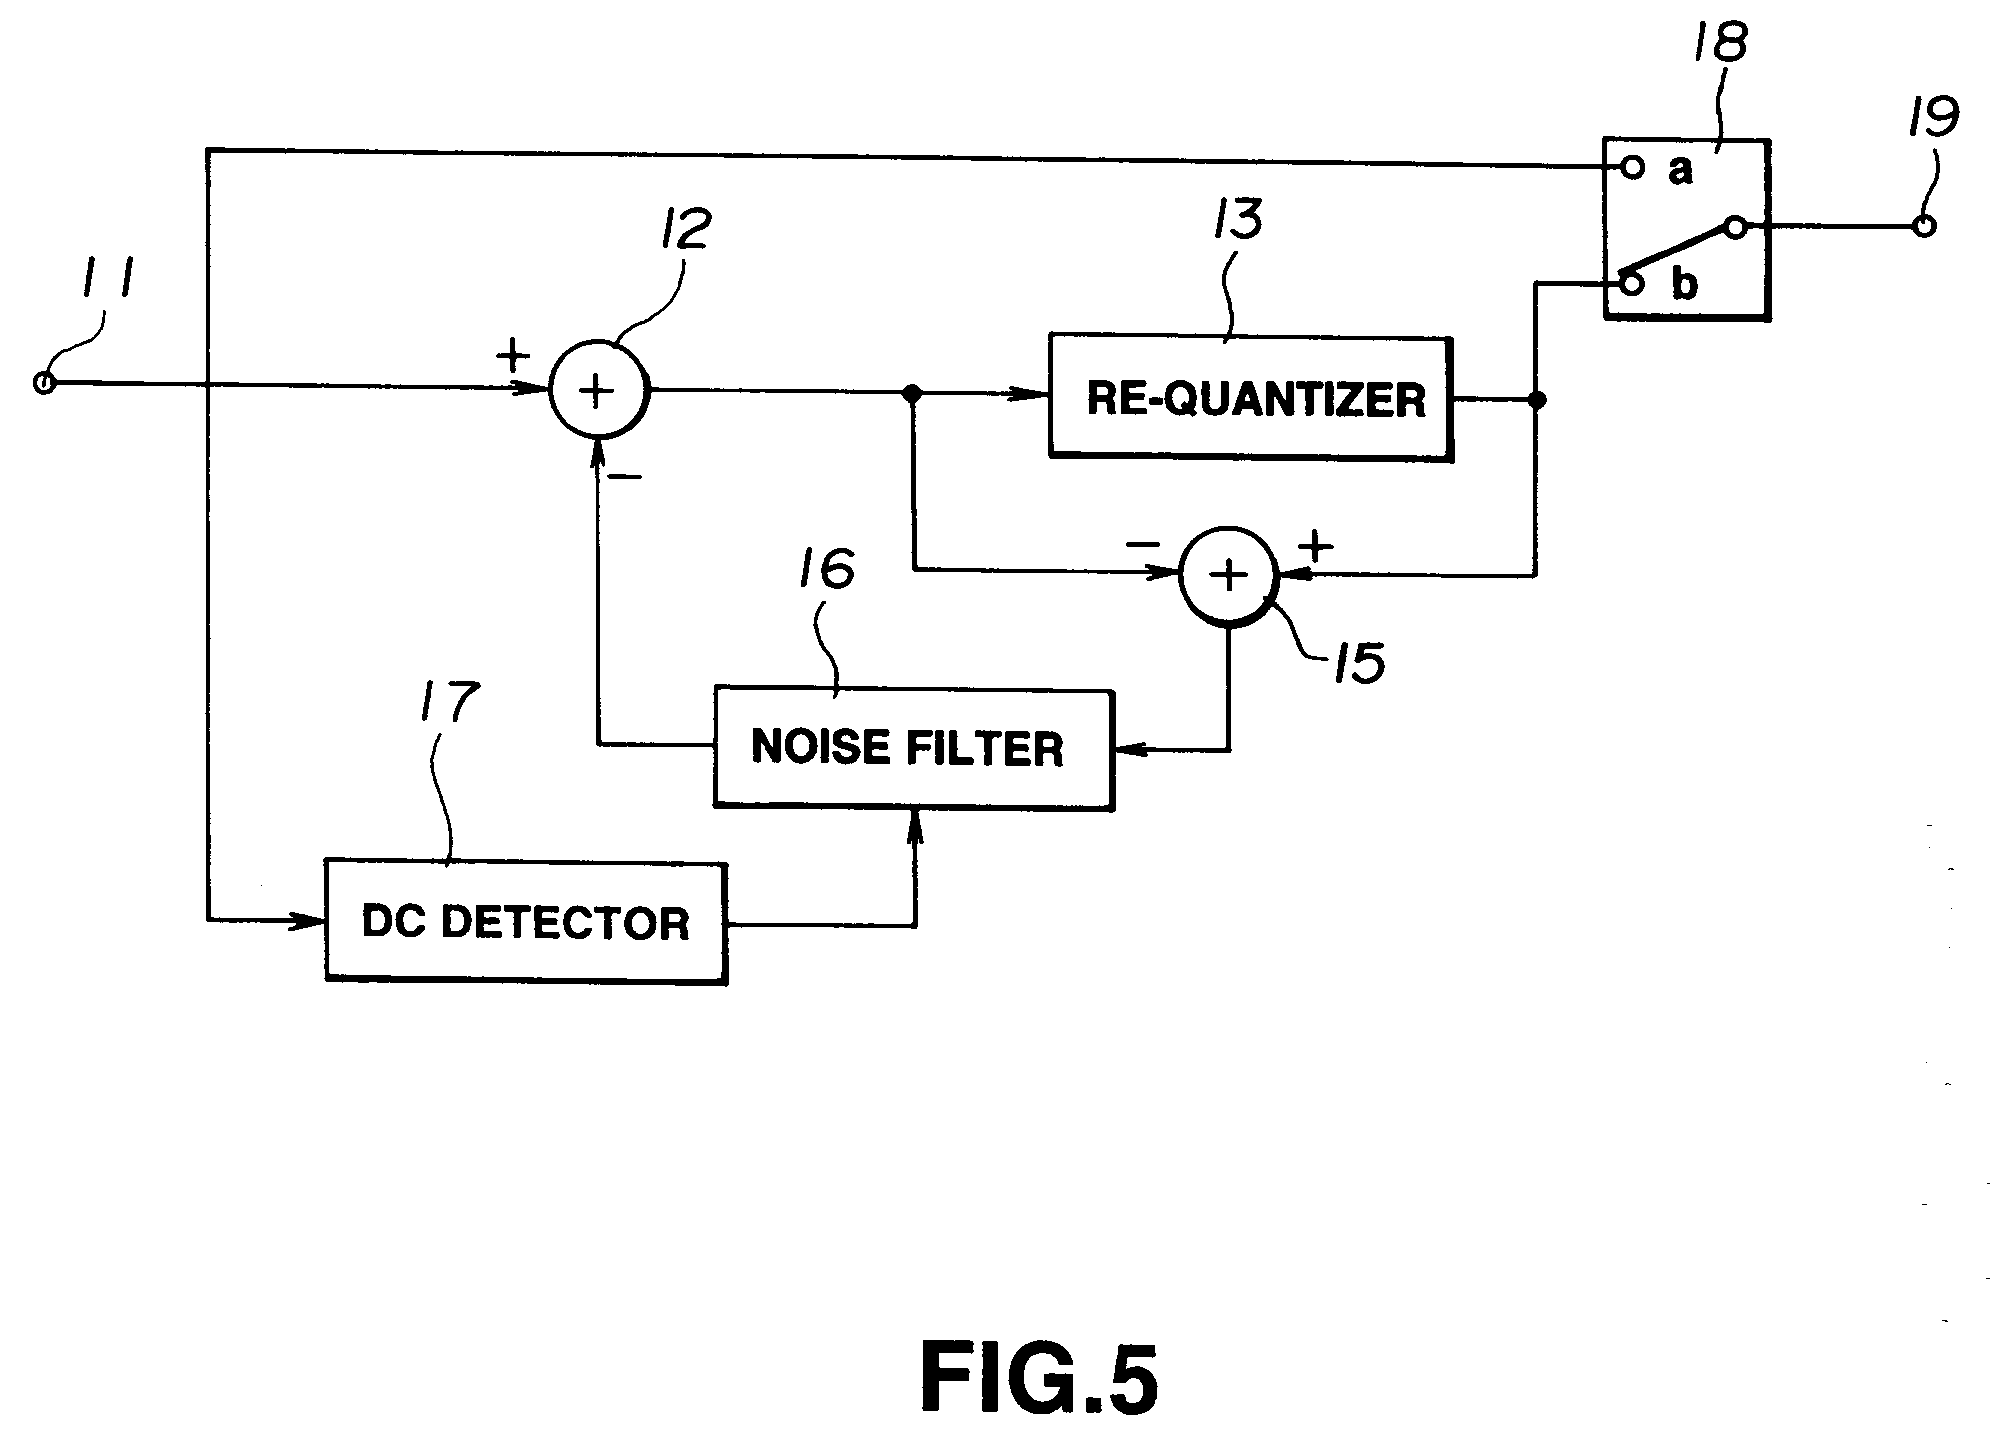 Noise shaping circuit and noise shaping method - Patent 0596662